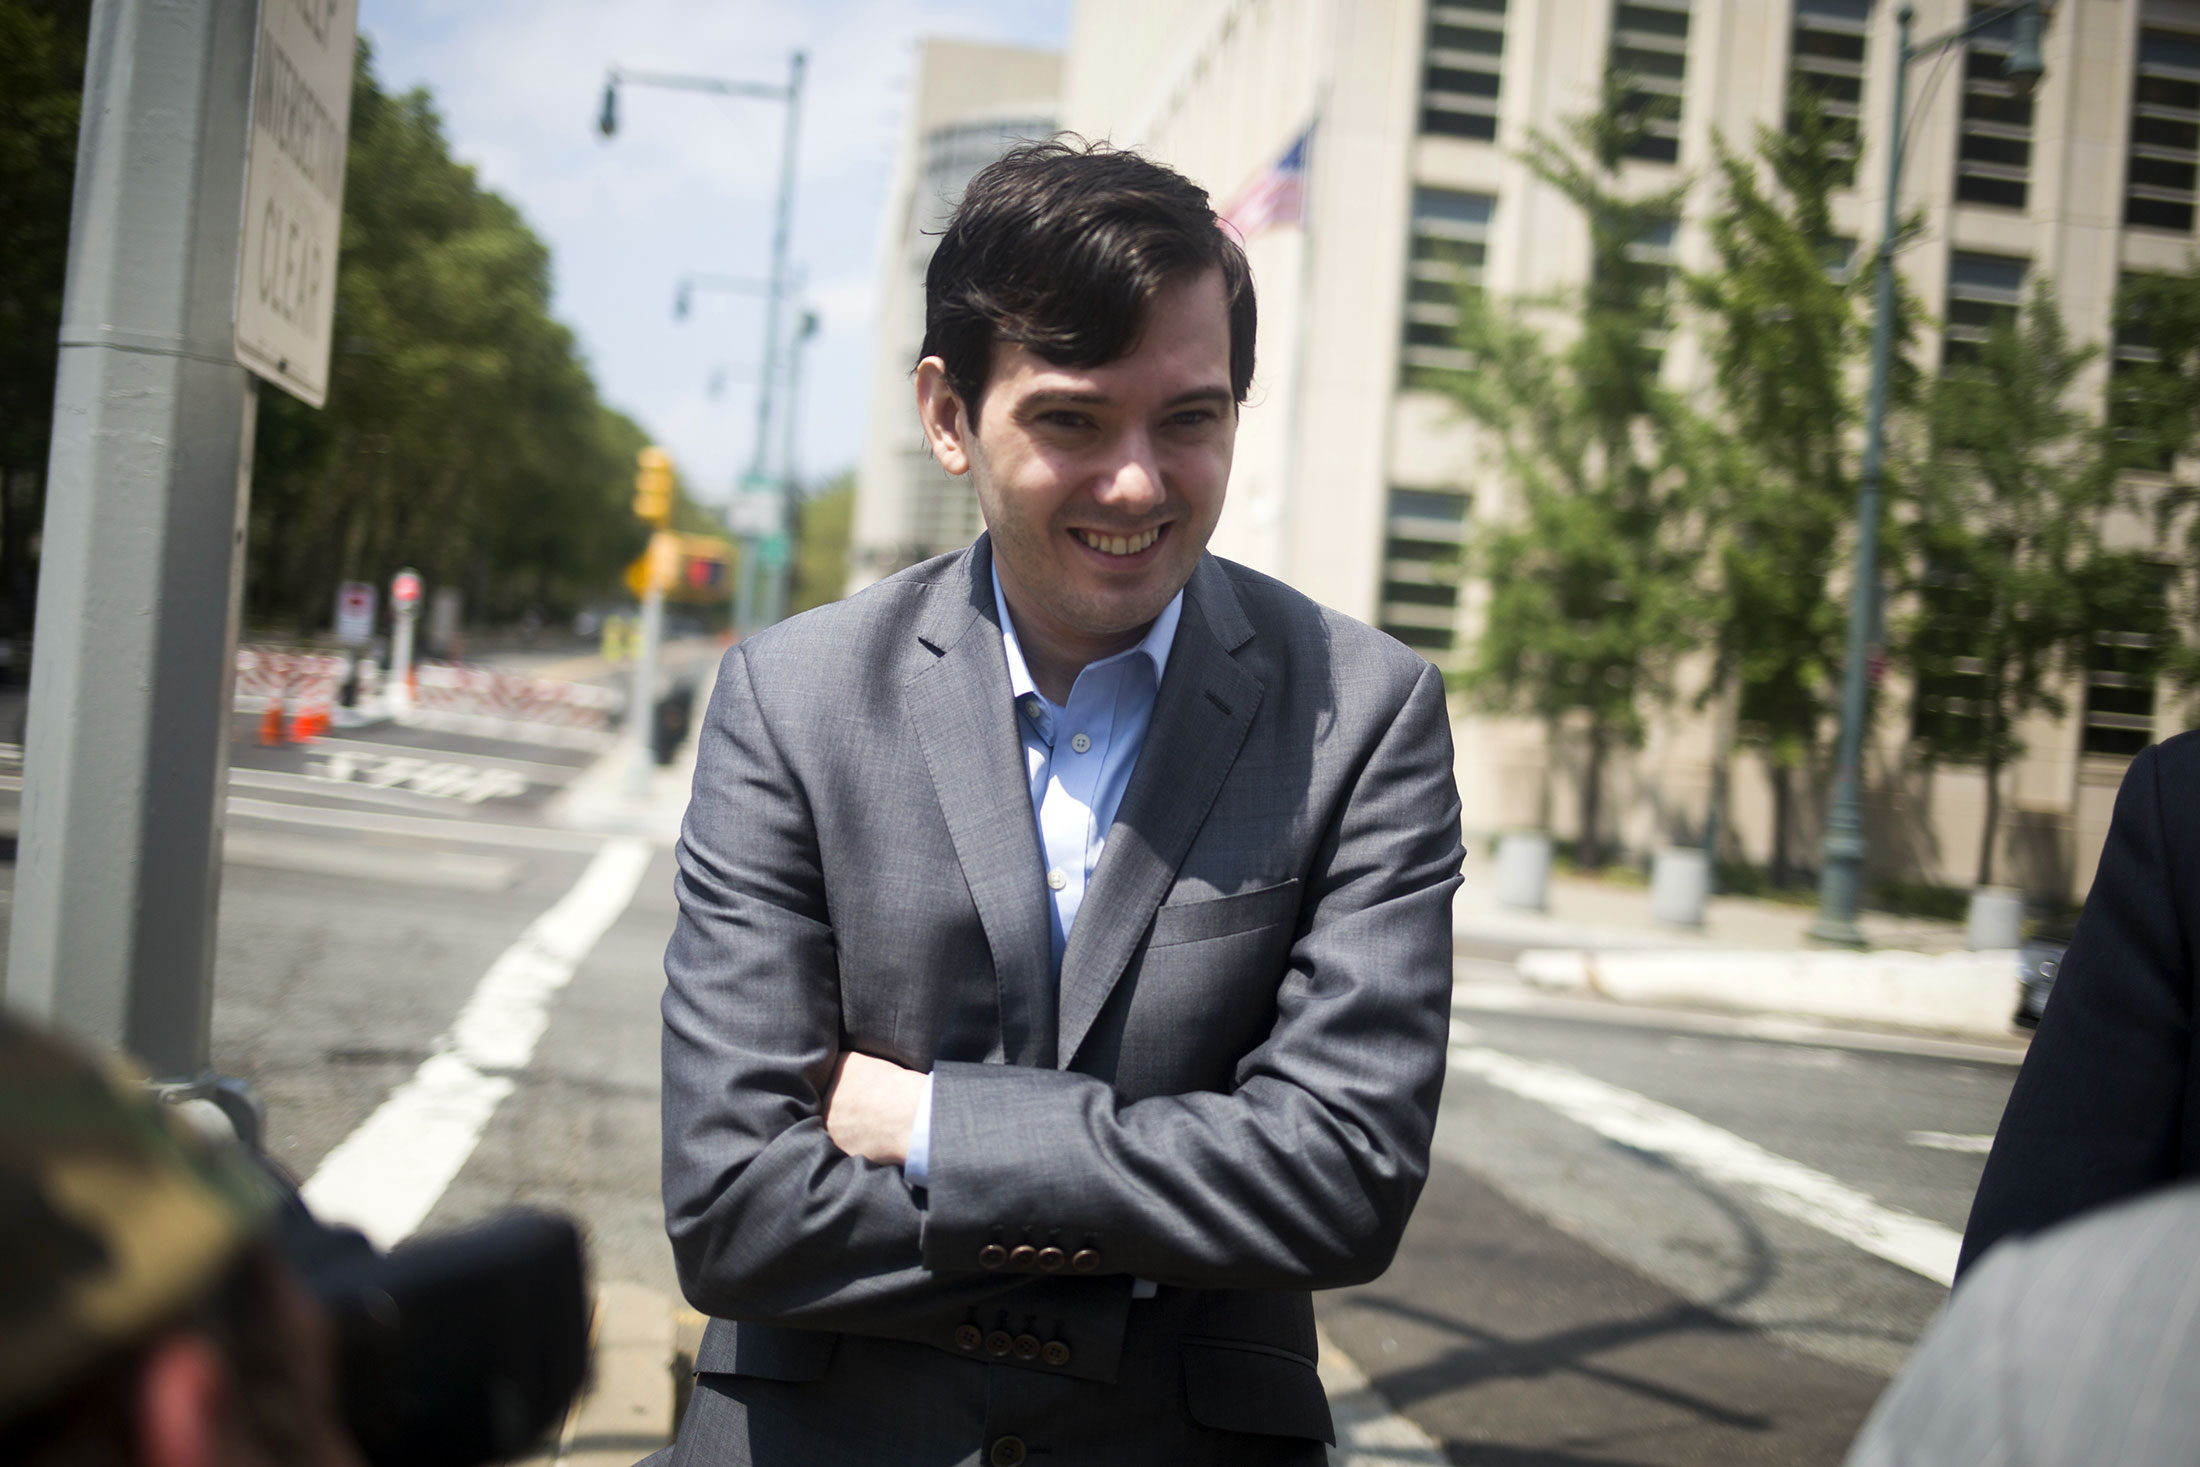 Martin Shkreli Back in the Spotlight as Musical Theater Villain